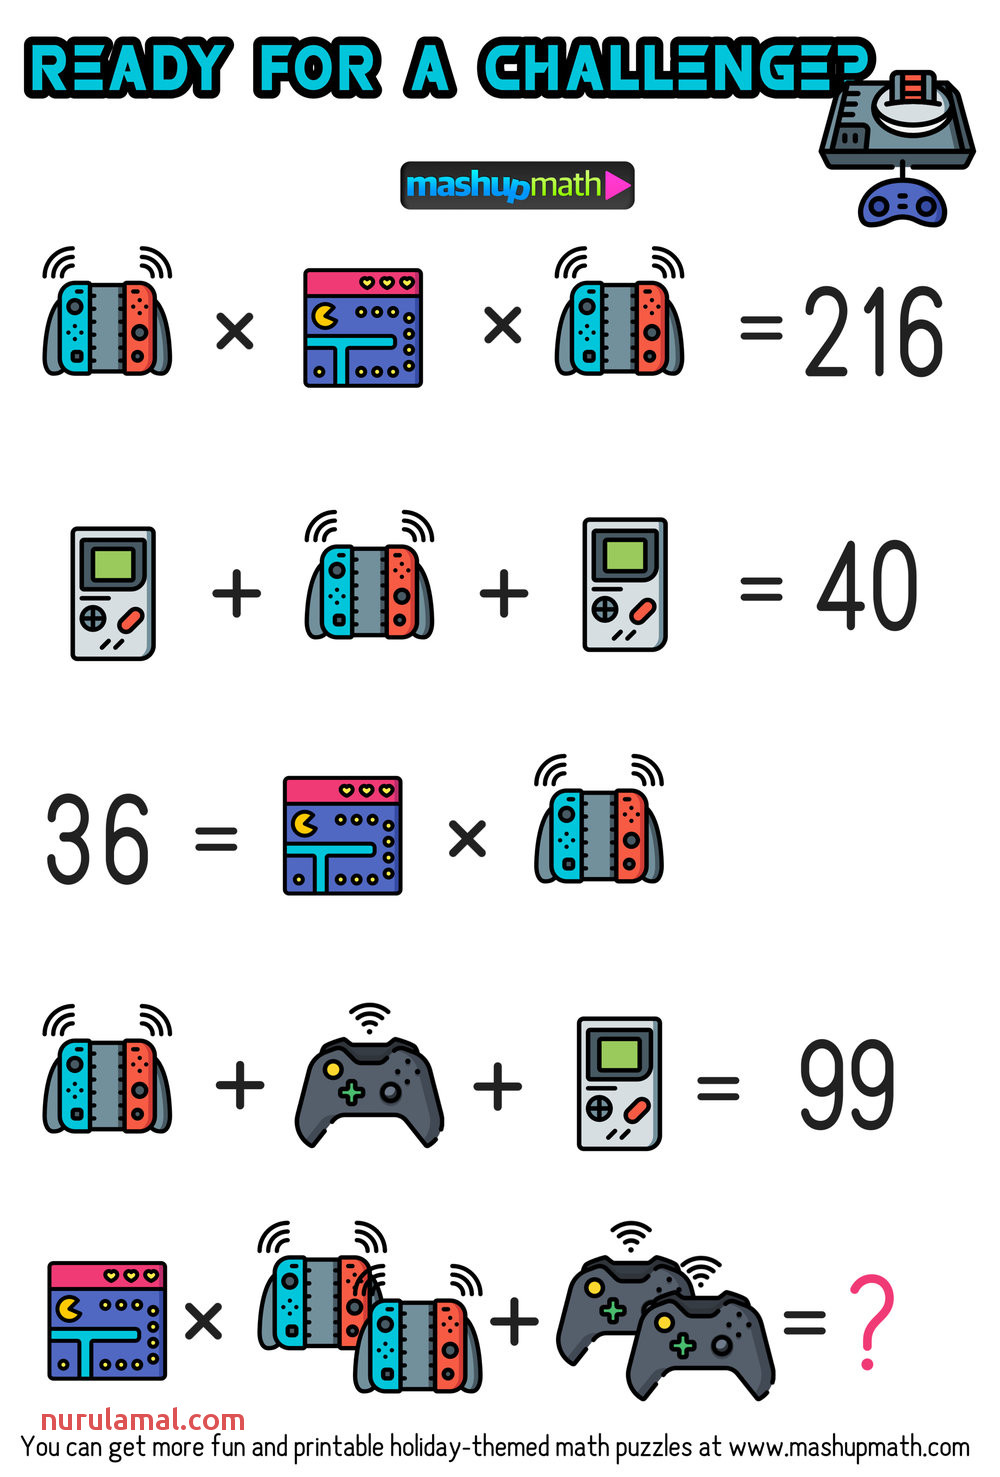 Math Video Games Puzzles for Grades 1 6 are Your Kids Ready